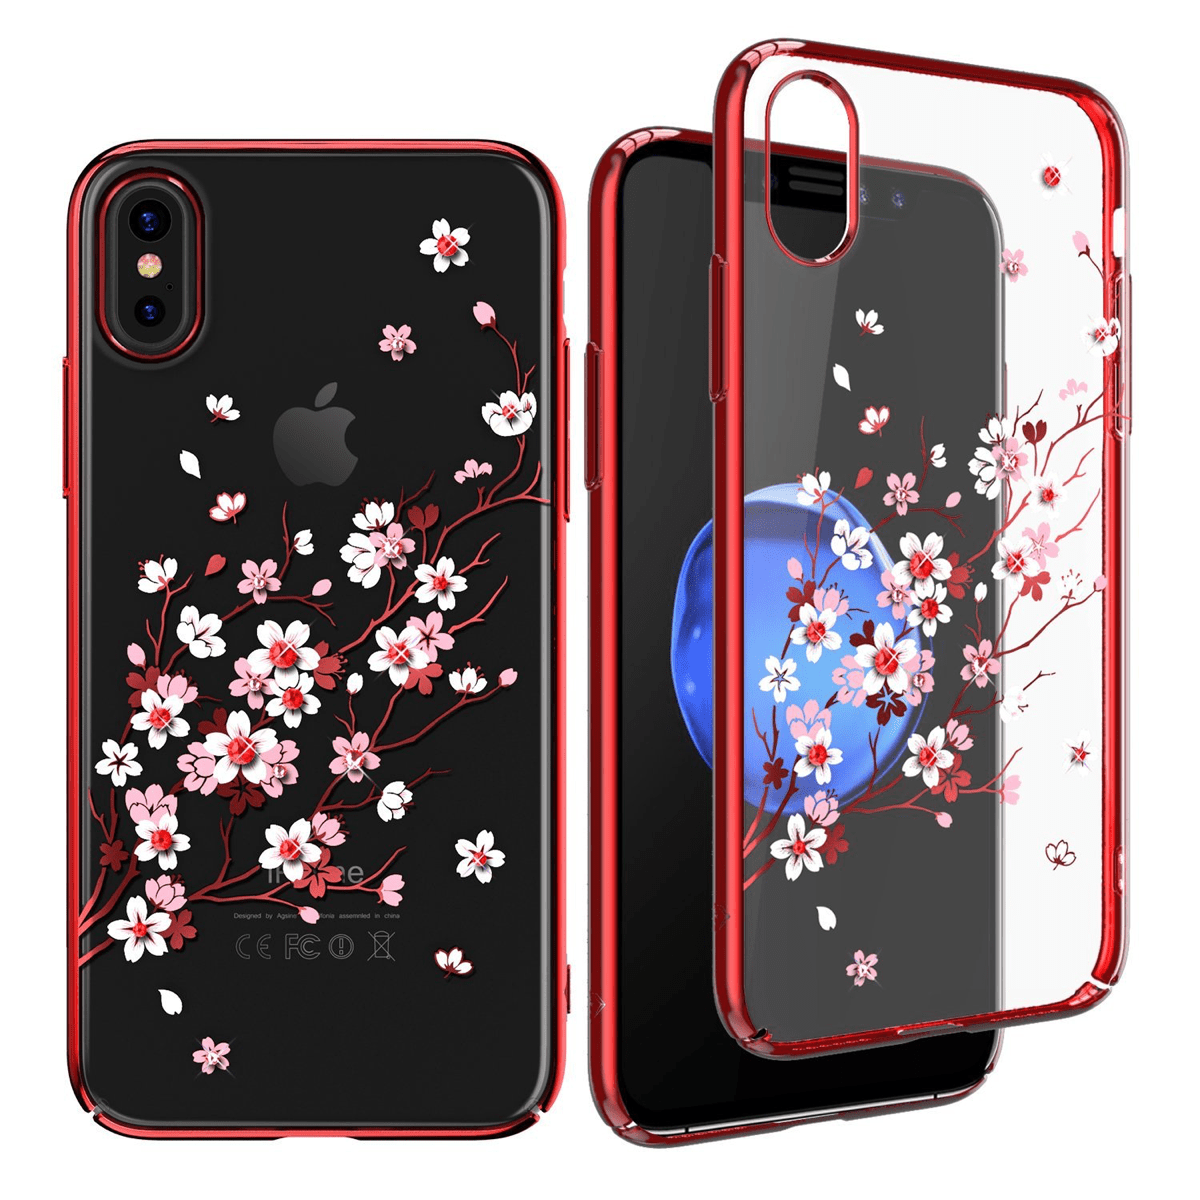 Kingxbar cherry blossom iPhone X bling cases.